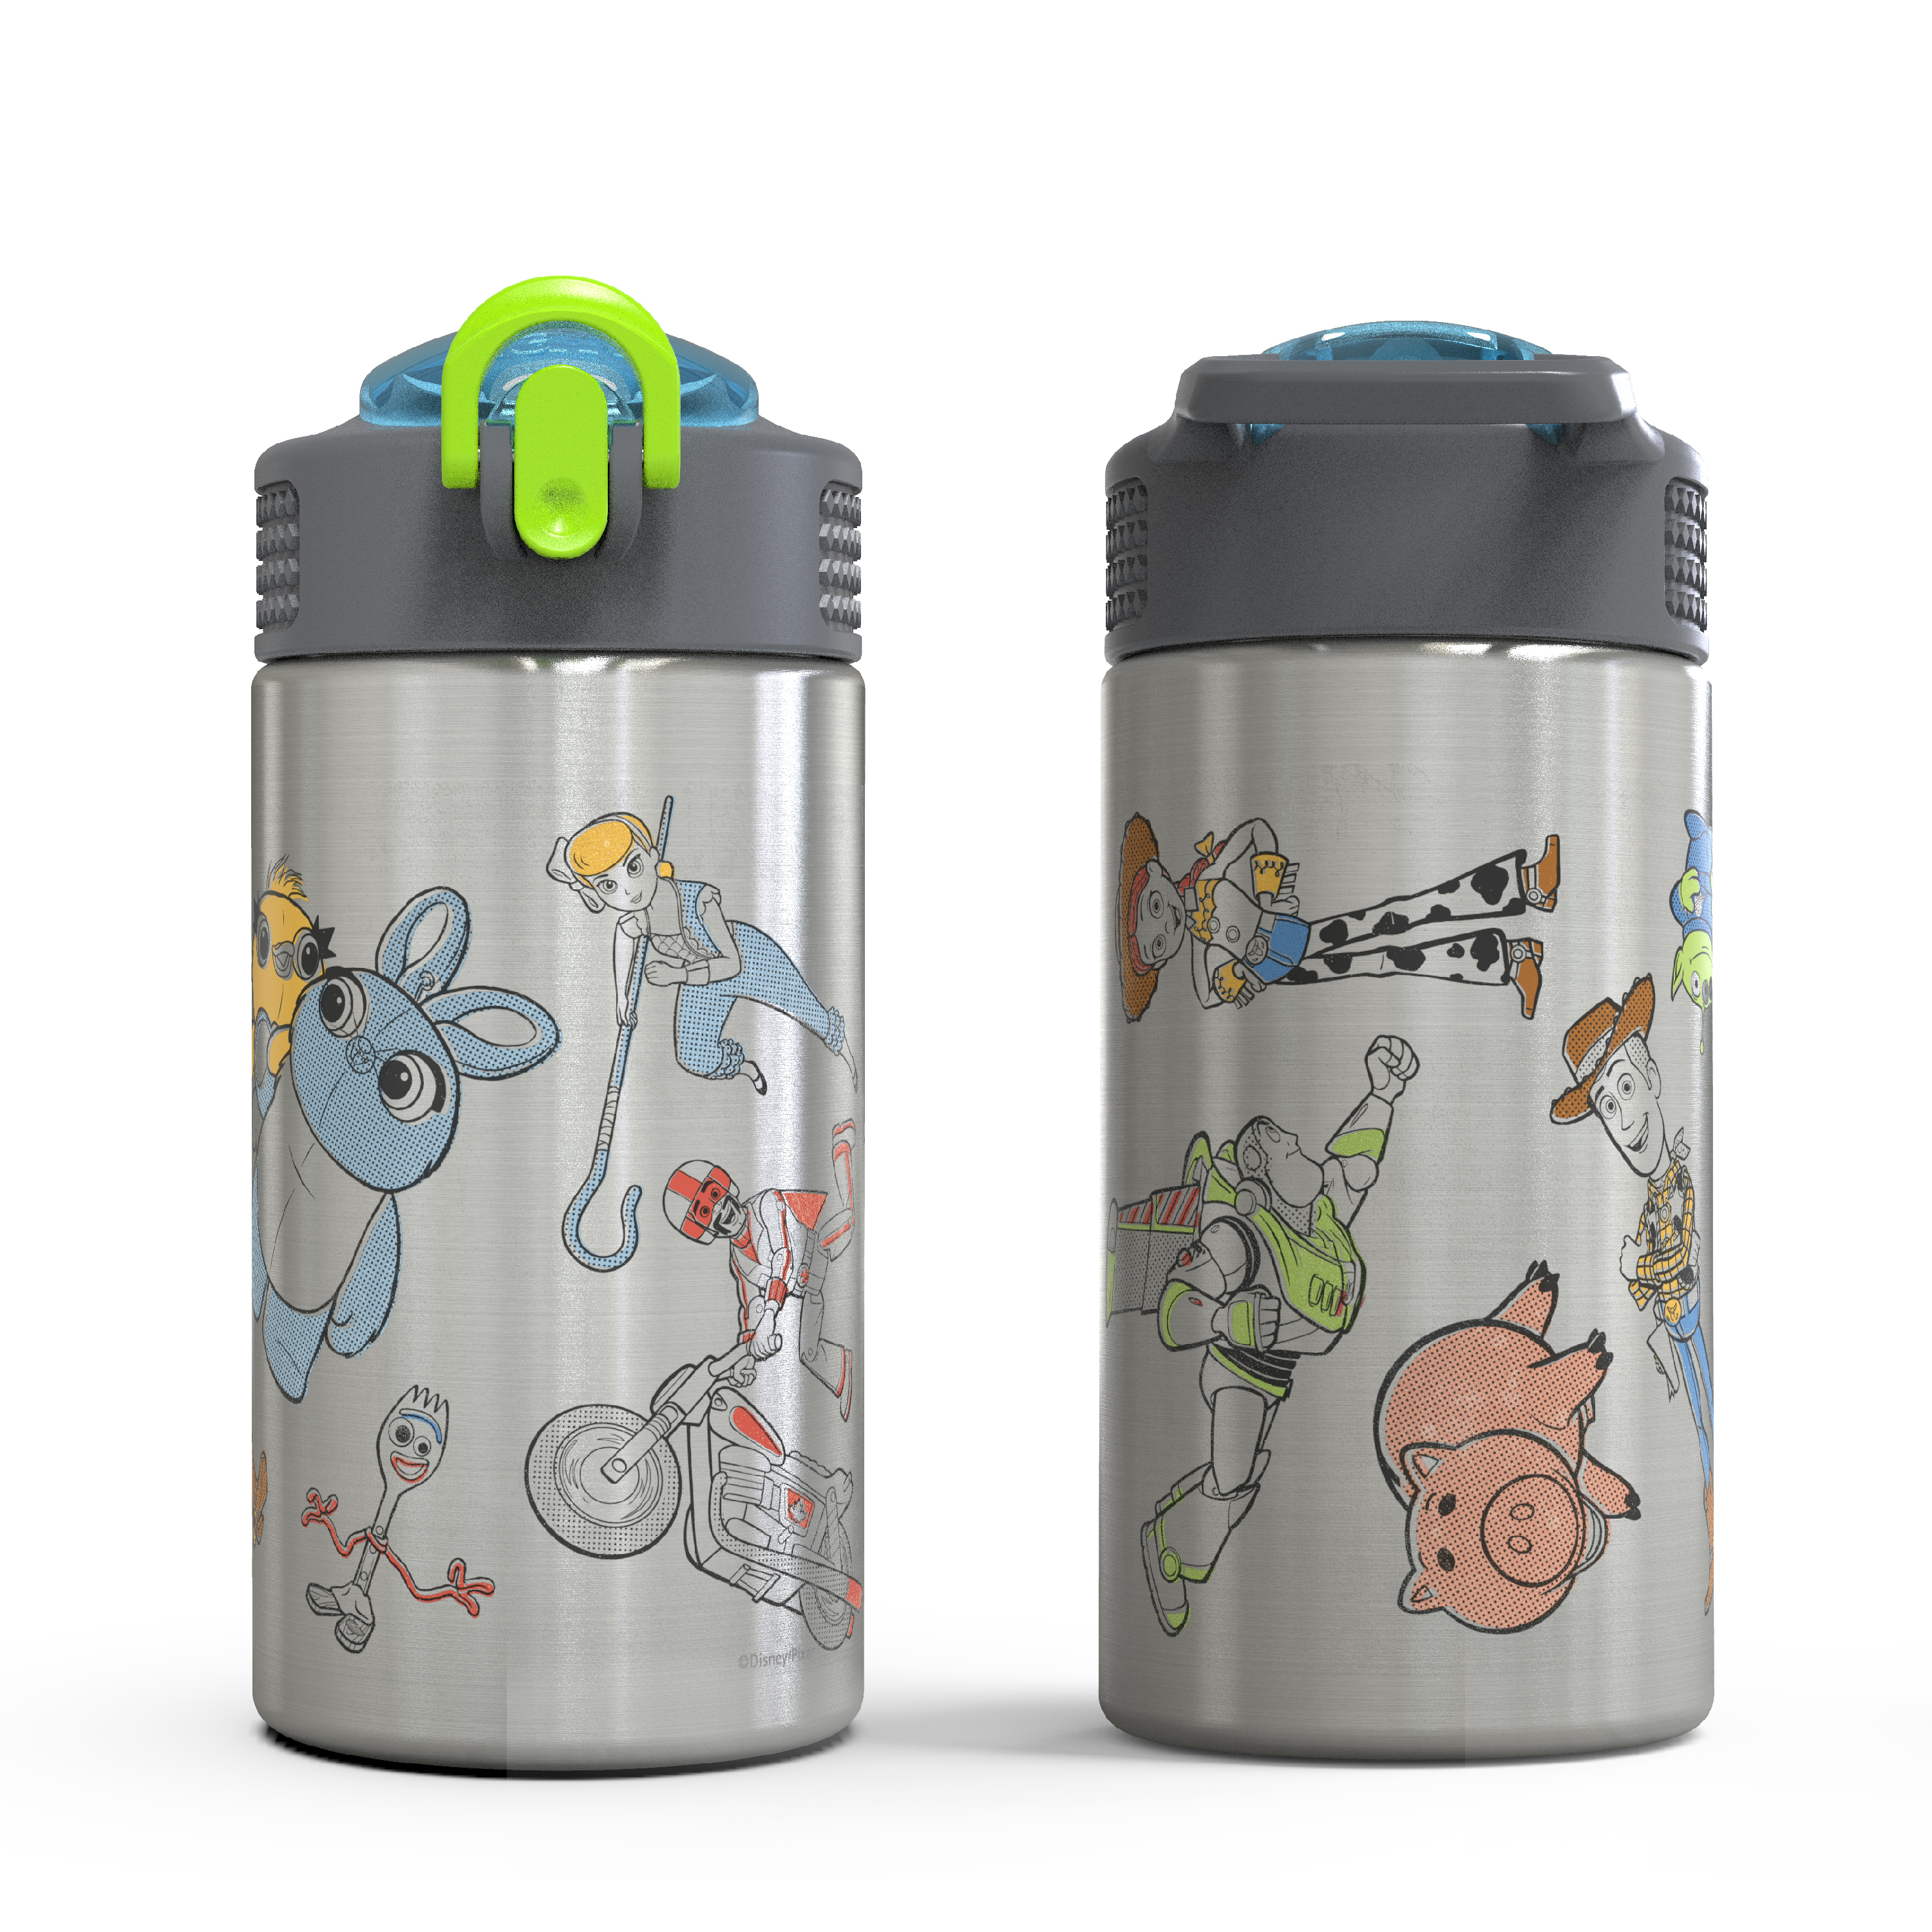 Toy Story 4 Movie 15.5 ounce Water Bottle, Buzz, Woody & Friends slideshow image 5